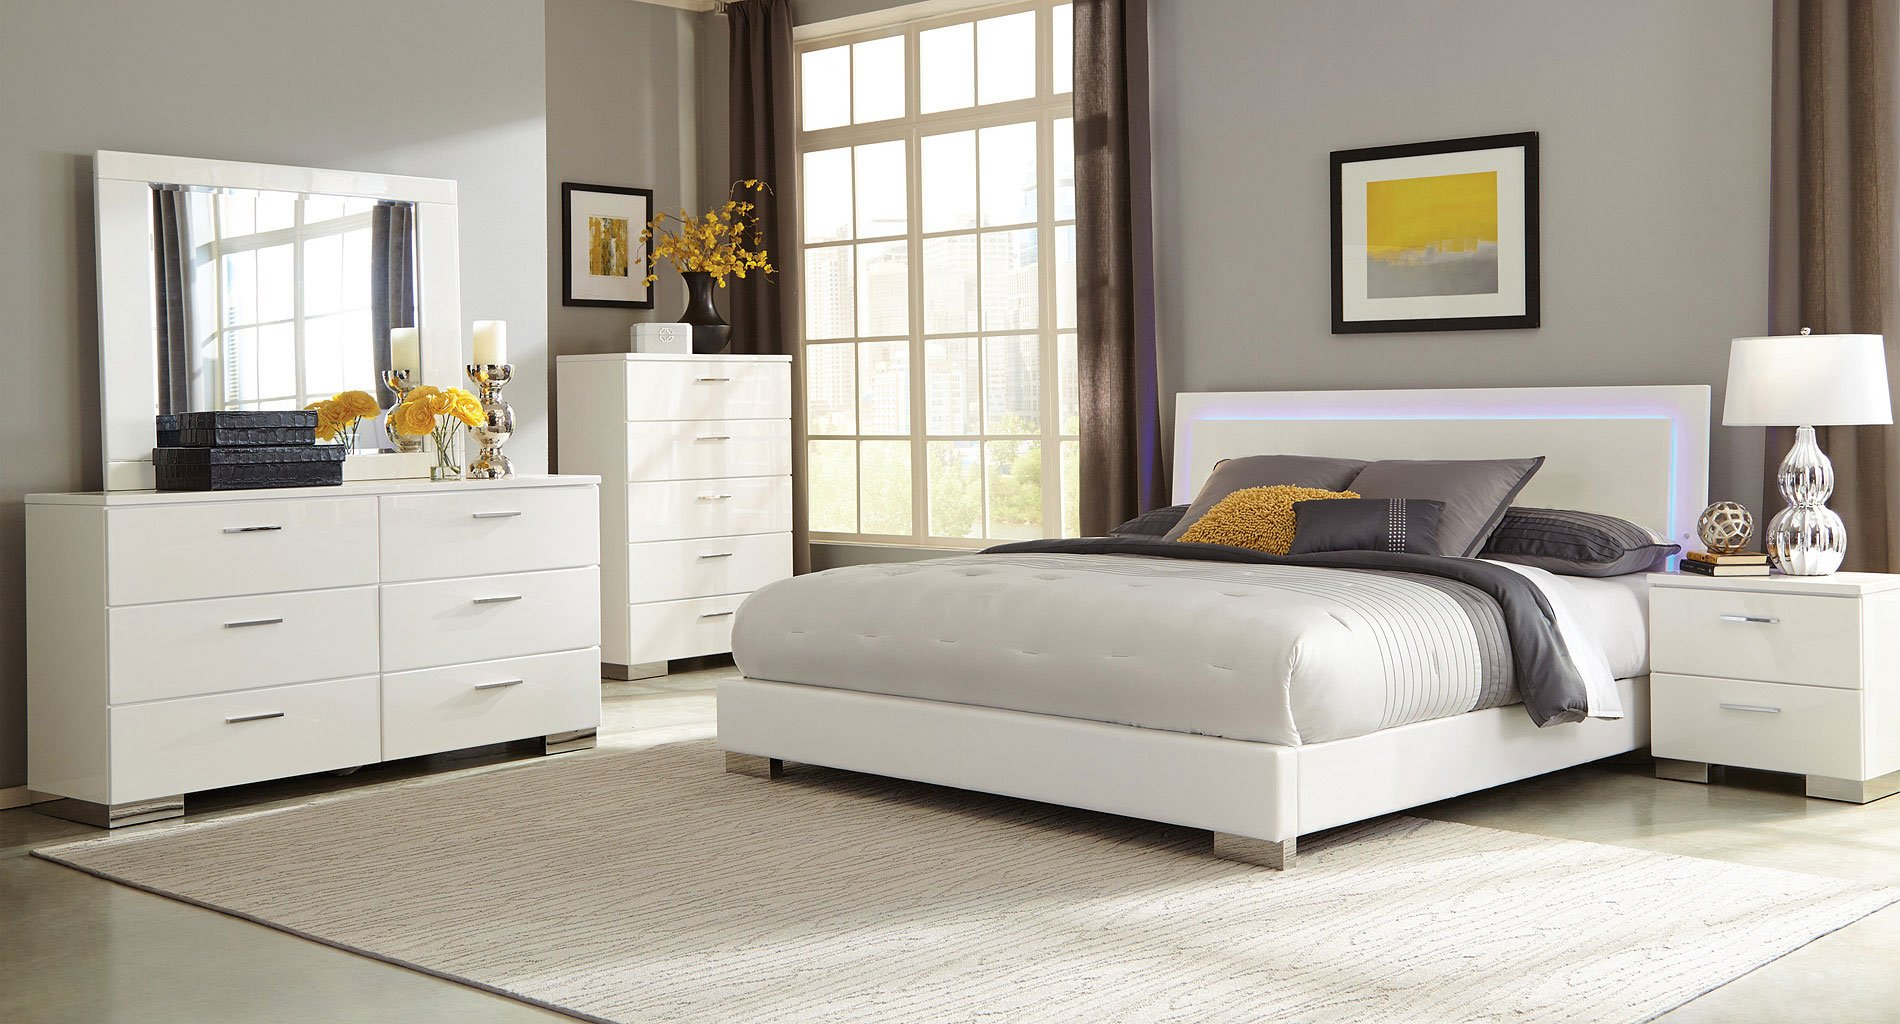 Felicity Low Profile Bedroom Set W/ LED Light